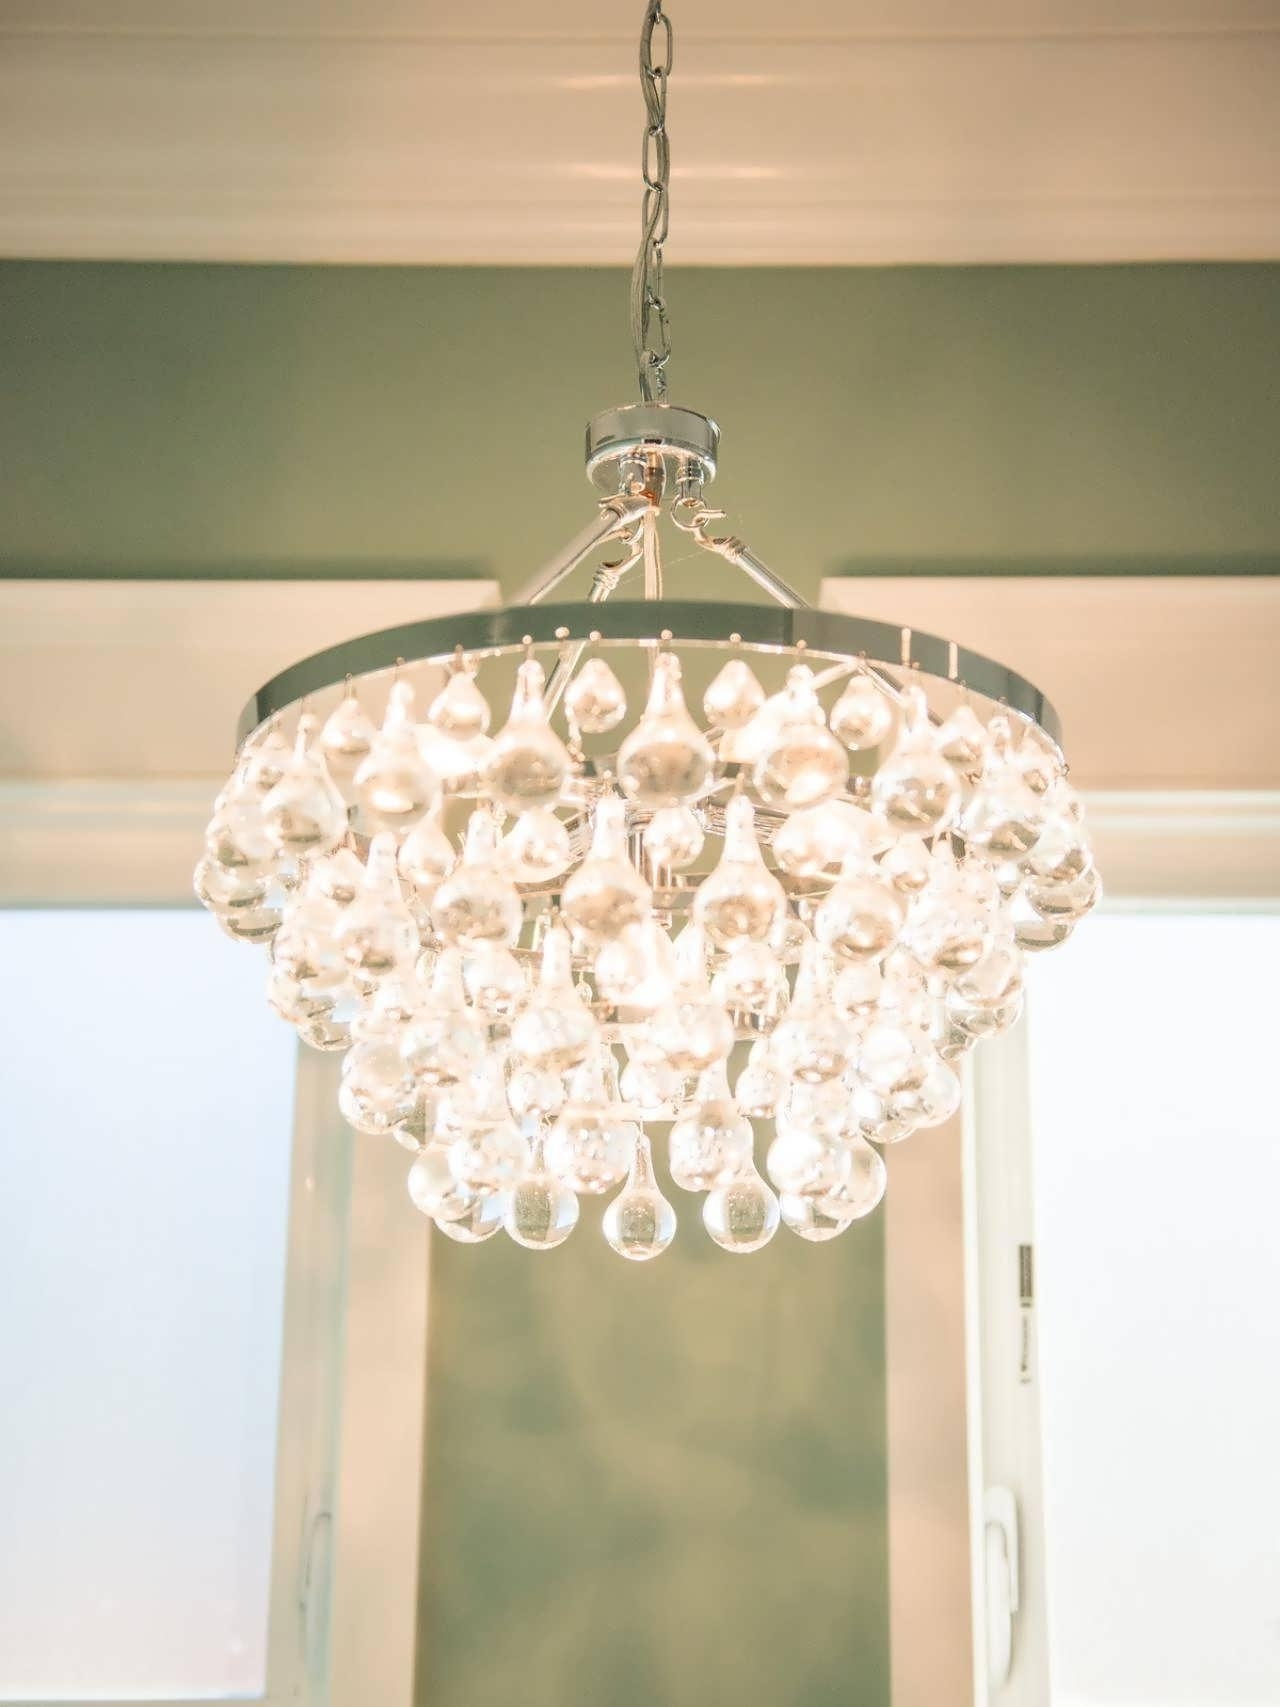 Shabby Chic Chandeliers In Best And Newest Chandeliers : Shabby Chic Chandeliers Elegant Chandeliers Design (View 17 of 20)